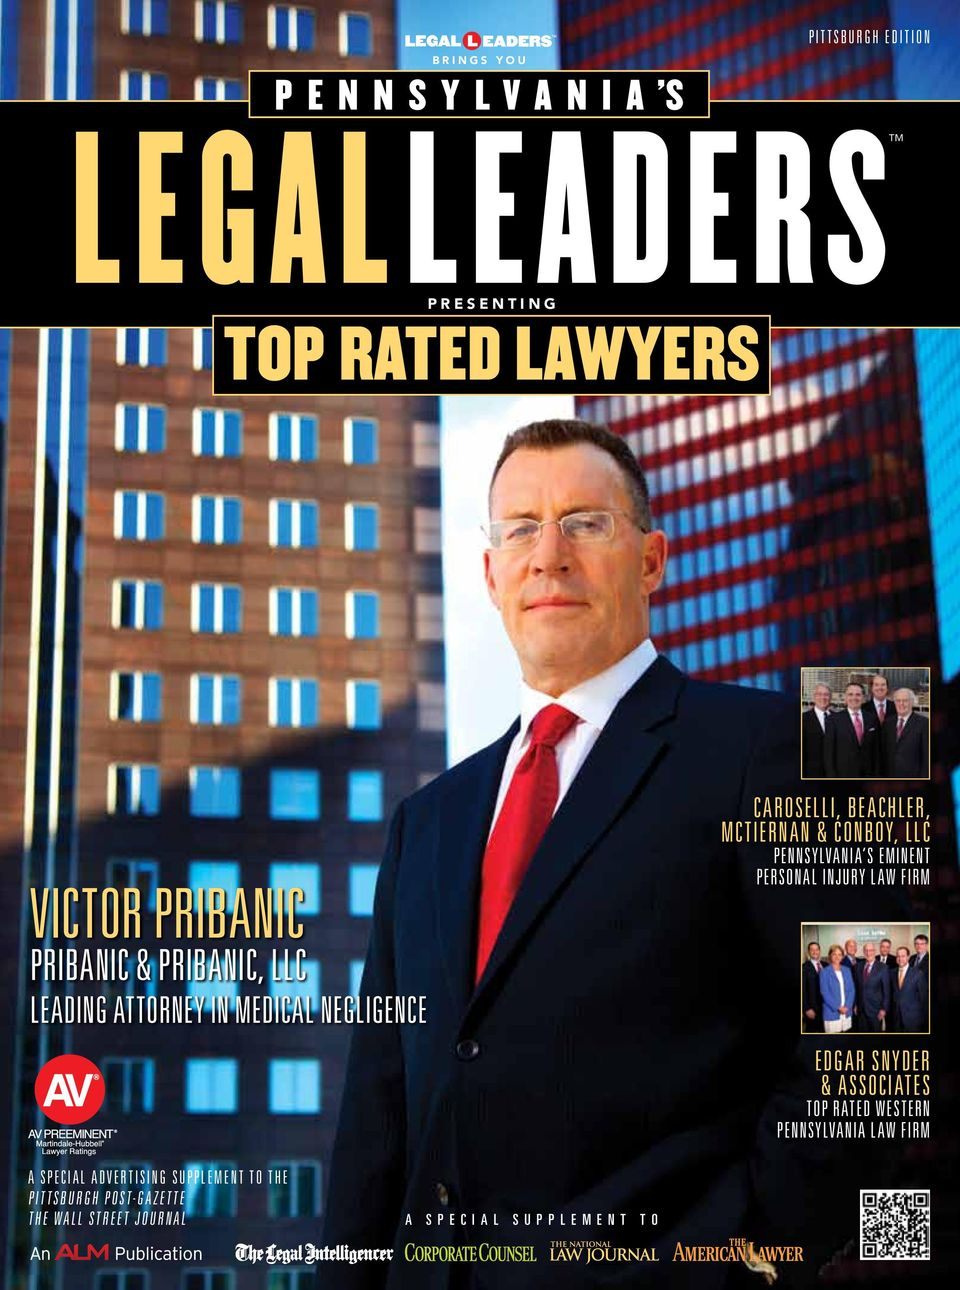 Eminent Personal Injury Law firm Edgar Snyder & Associates Top rated Western Pennsylvania Law Firm A Special